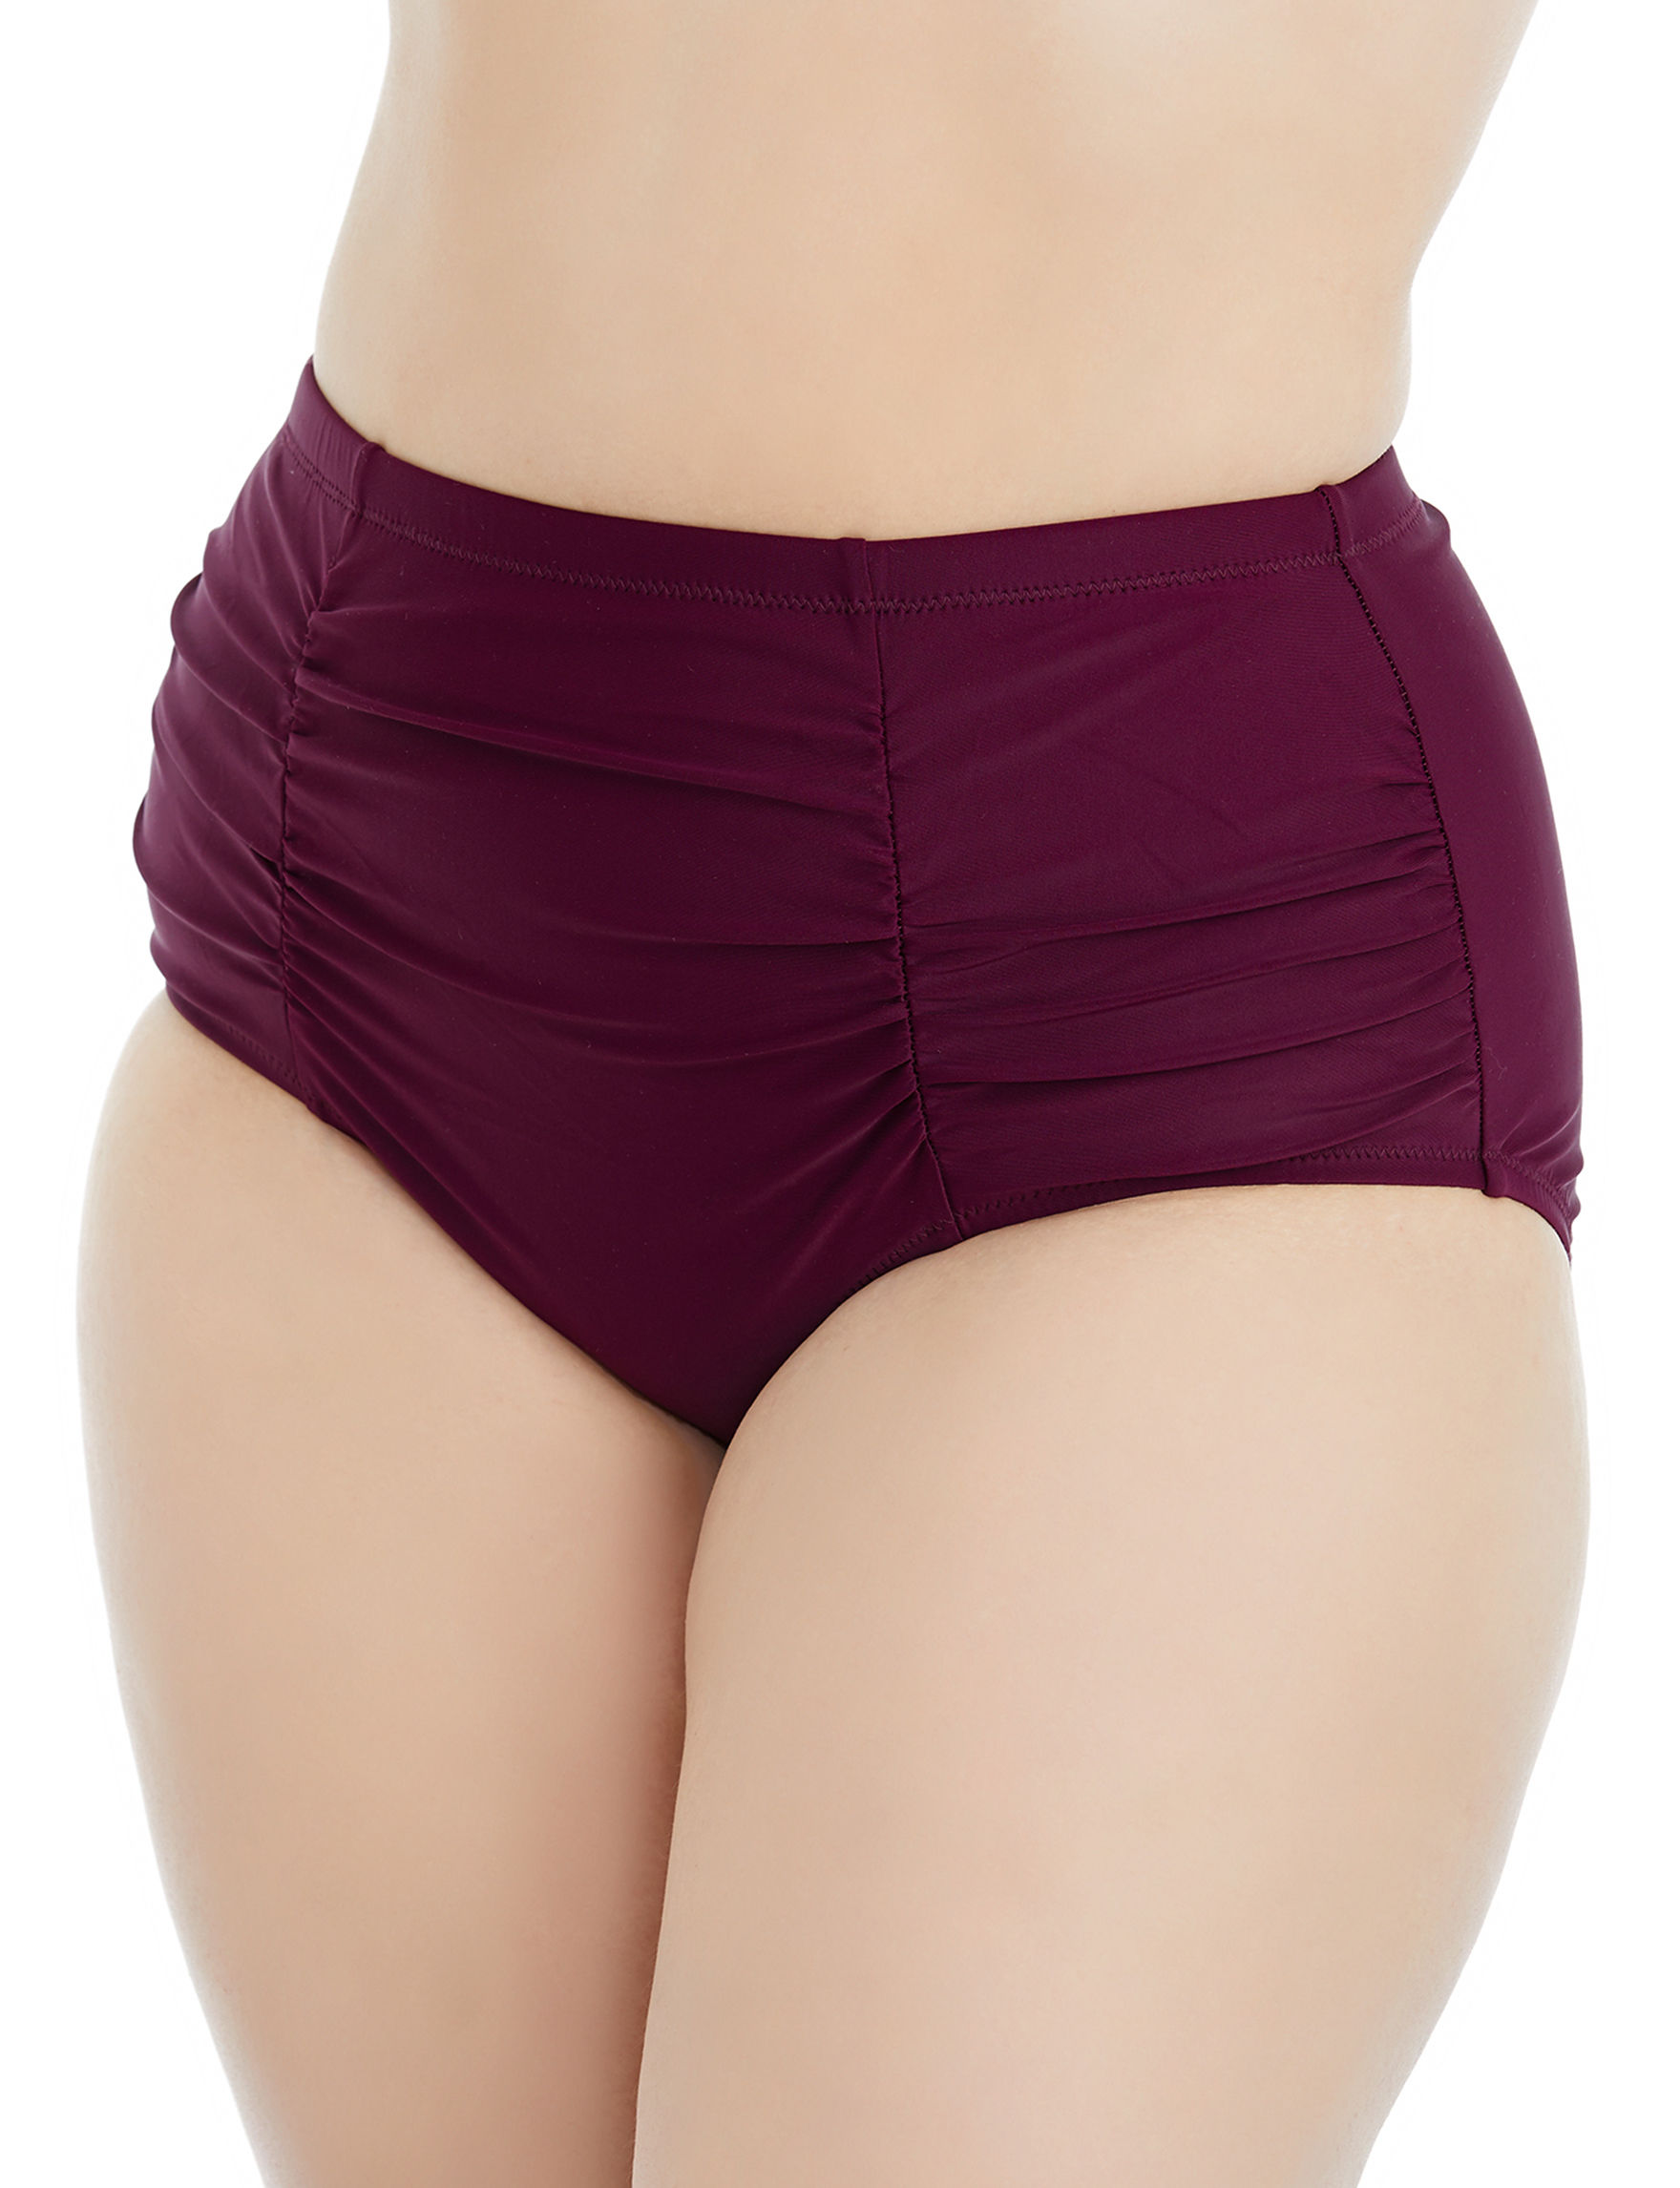 Raisins Curve Maroon Swimsuit Bottoms High Waist